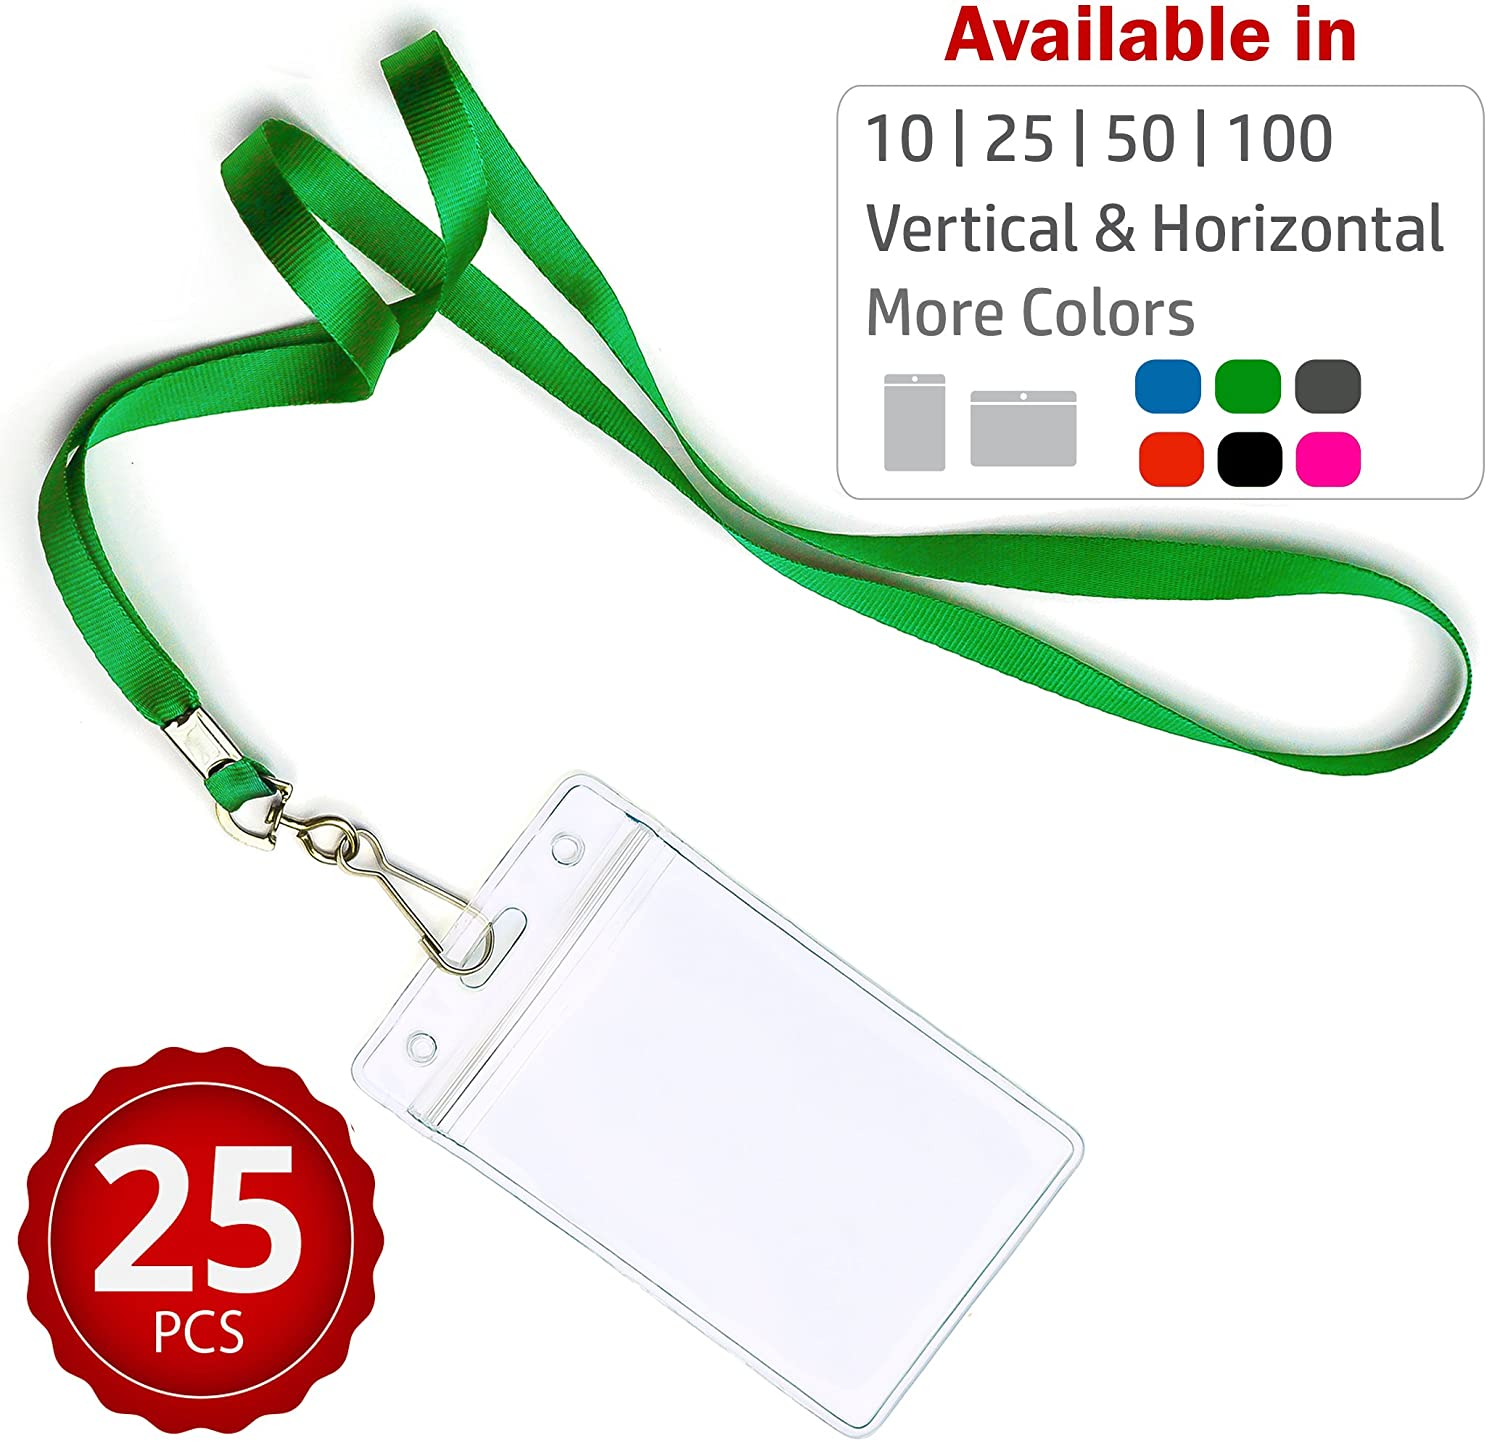 Cruises /& More Events by Stationery King Teachers Tours Businesses Waterproof /& Dustproof ~ for Moms Durably Woven Lanyards /& Horizontal ID Badge Holders ~ Premium Quality 10 Pack, Gray